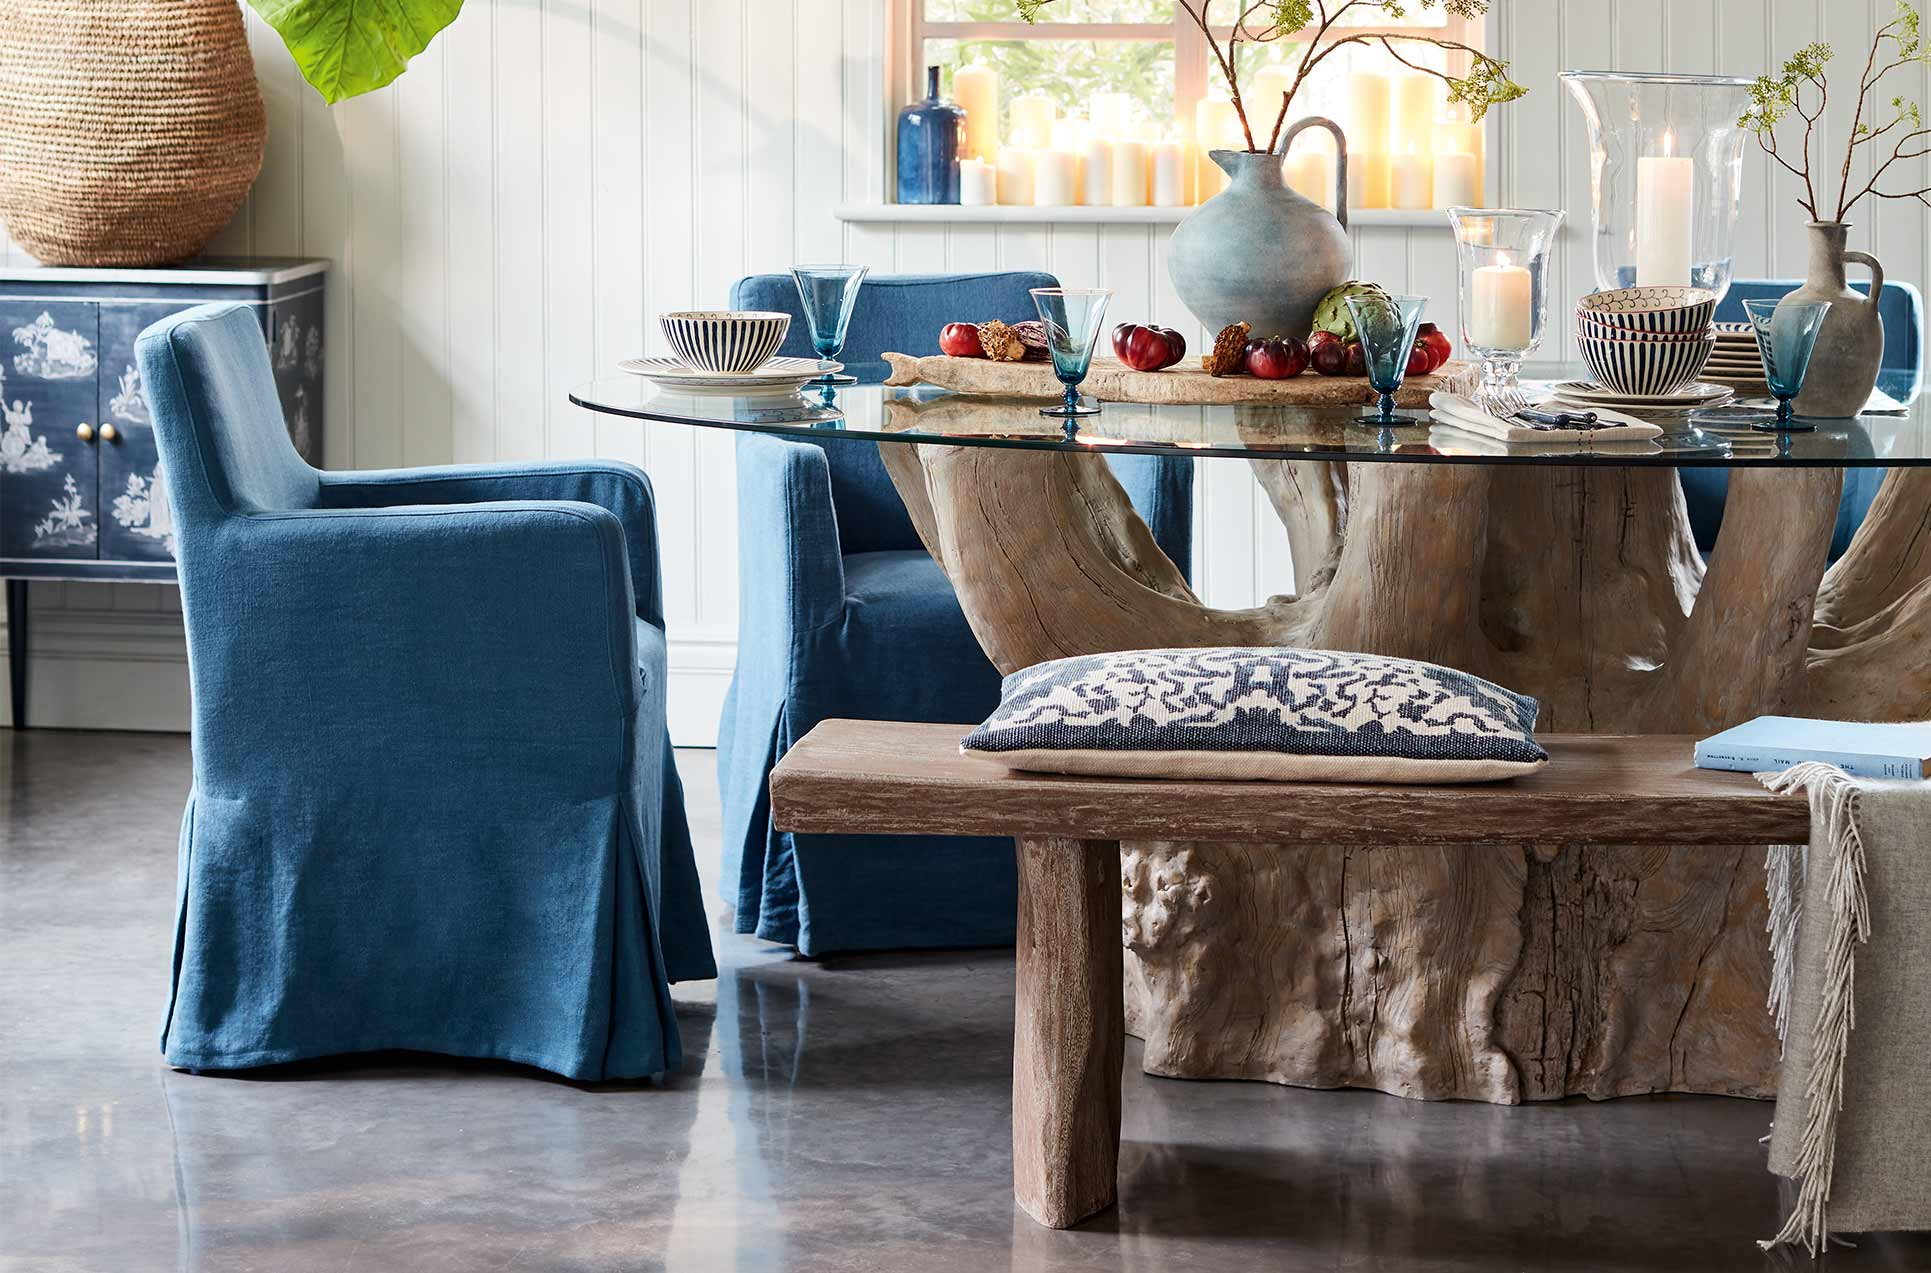 Navy linen loose covered dining chairs and a wooden bench around a glass-topped dining table with a tree trunk-style base